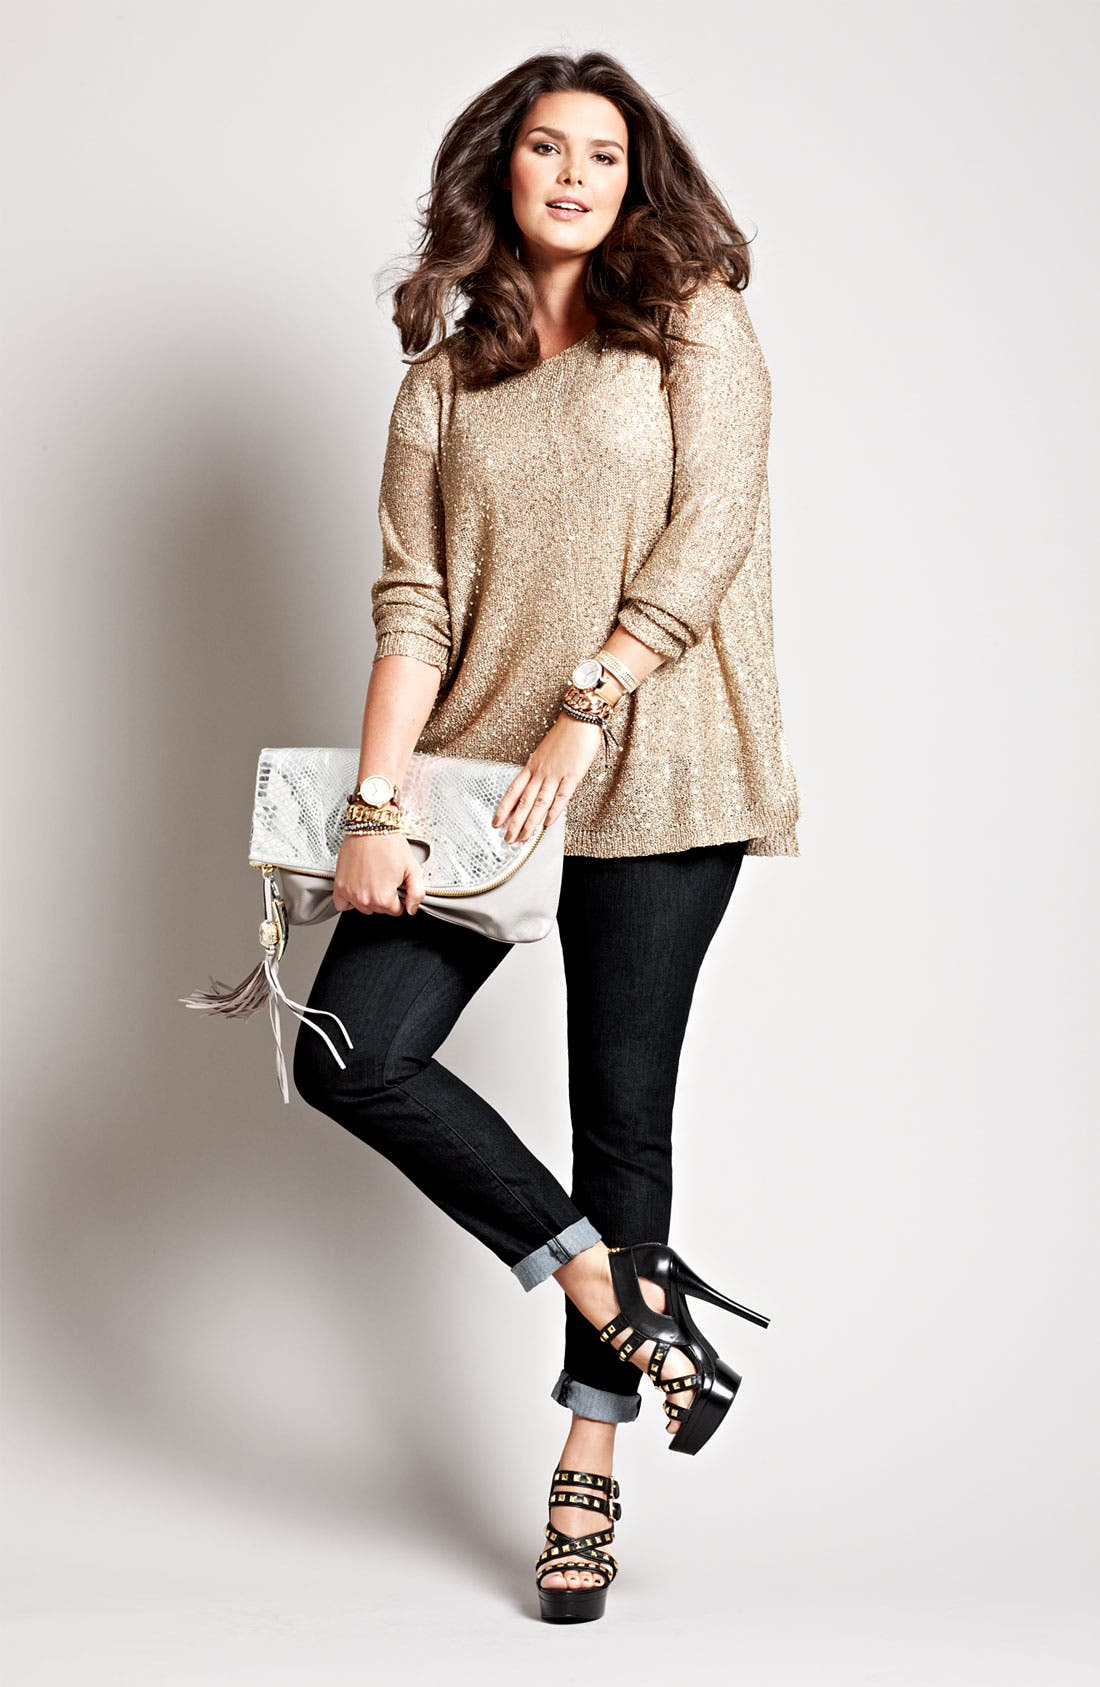 Main Image - DKNYC Top & Lucky Brand Leggings